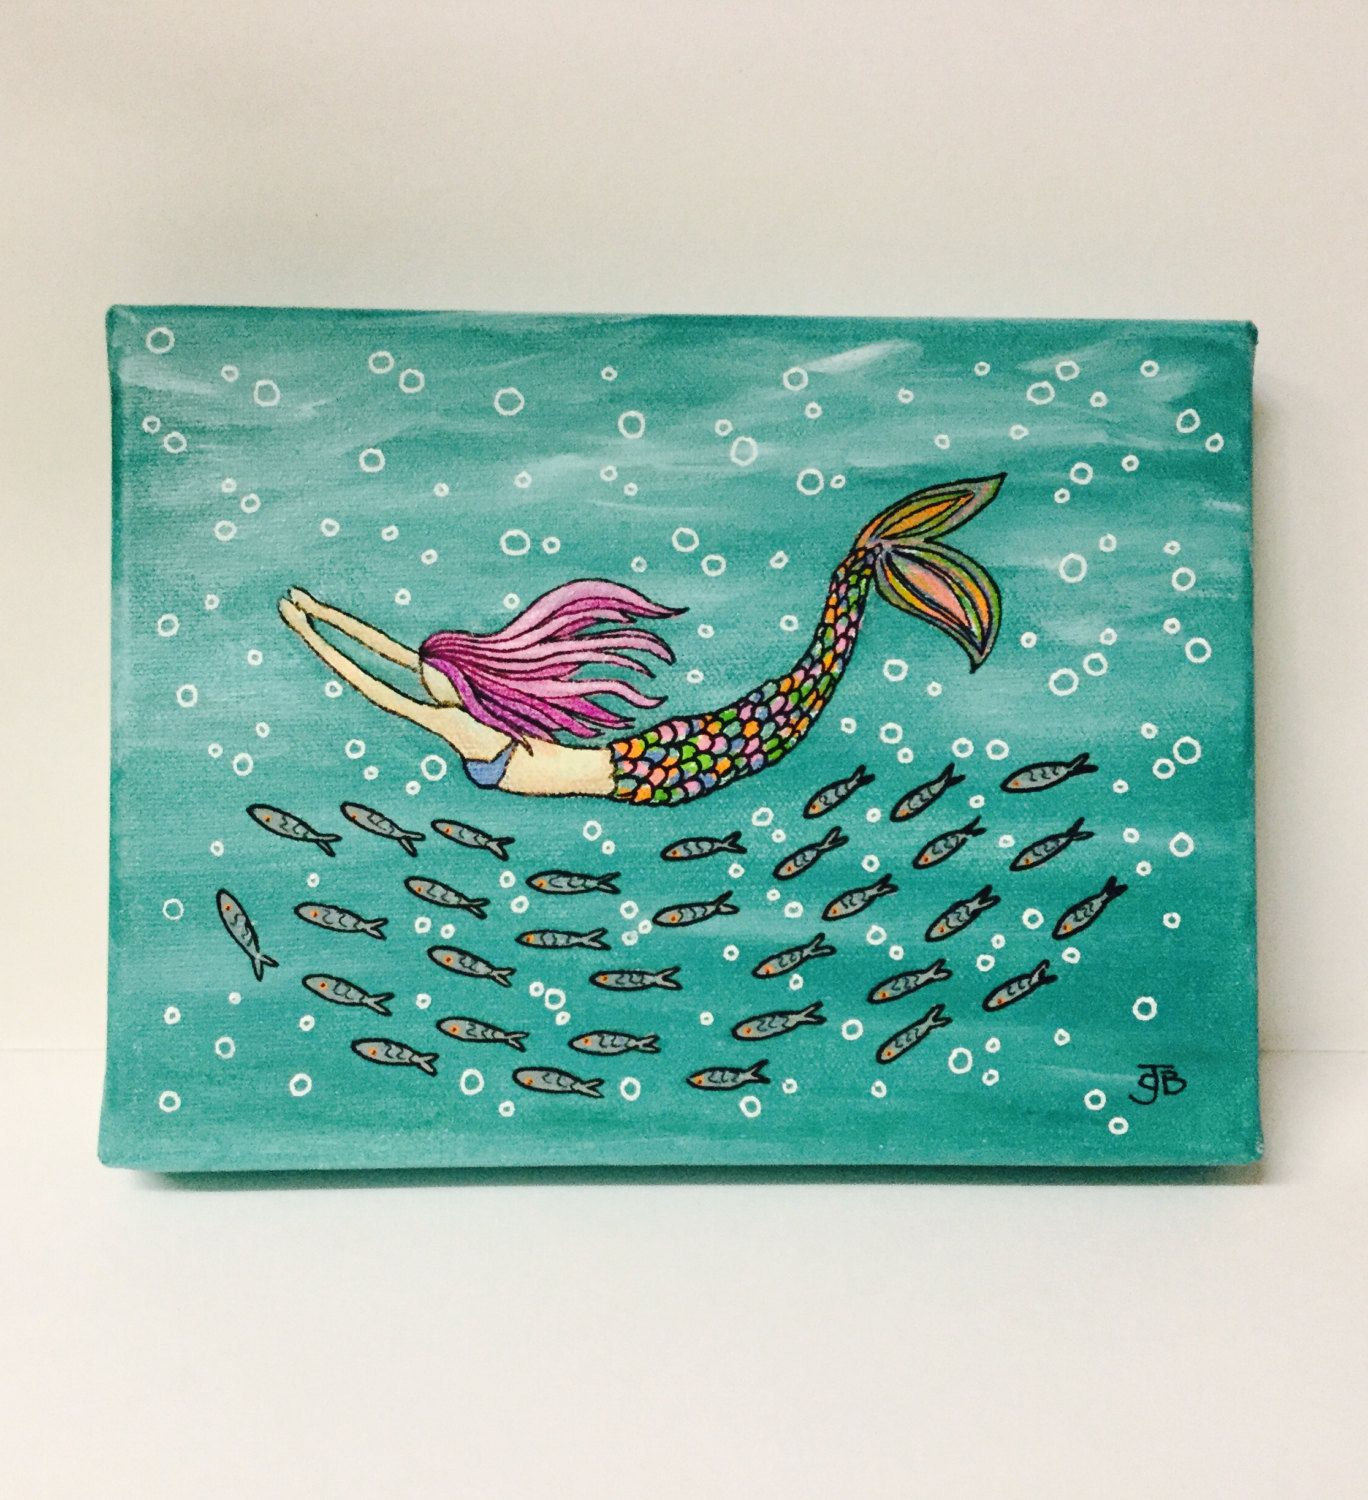 Original Hand Painted Illustrated Mermaid Swimming With Cornish Mackerel Shoal On Canvas By Spellboundbythesea Etsy